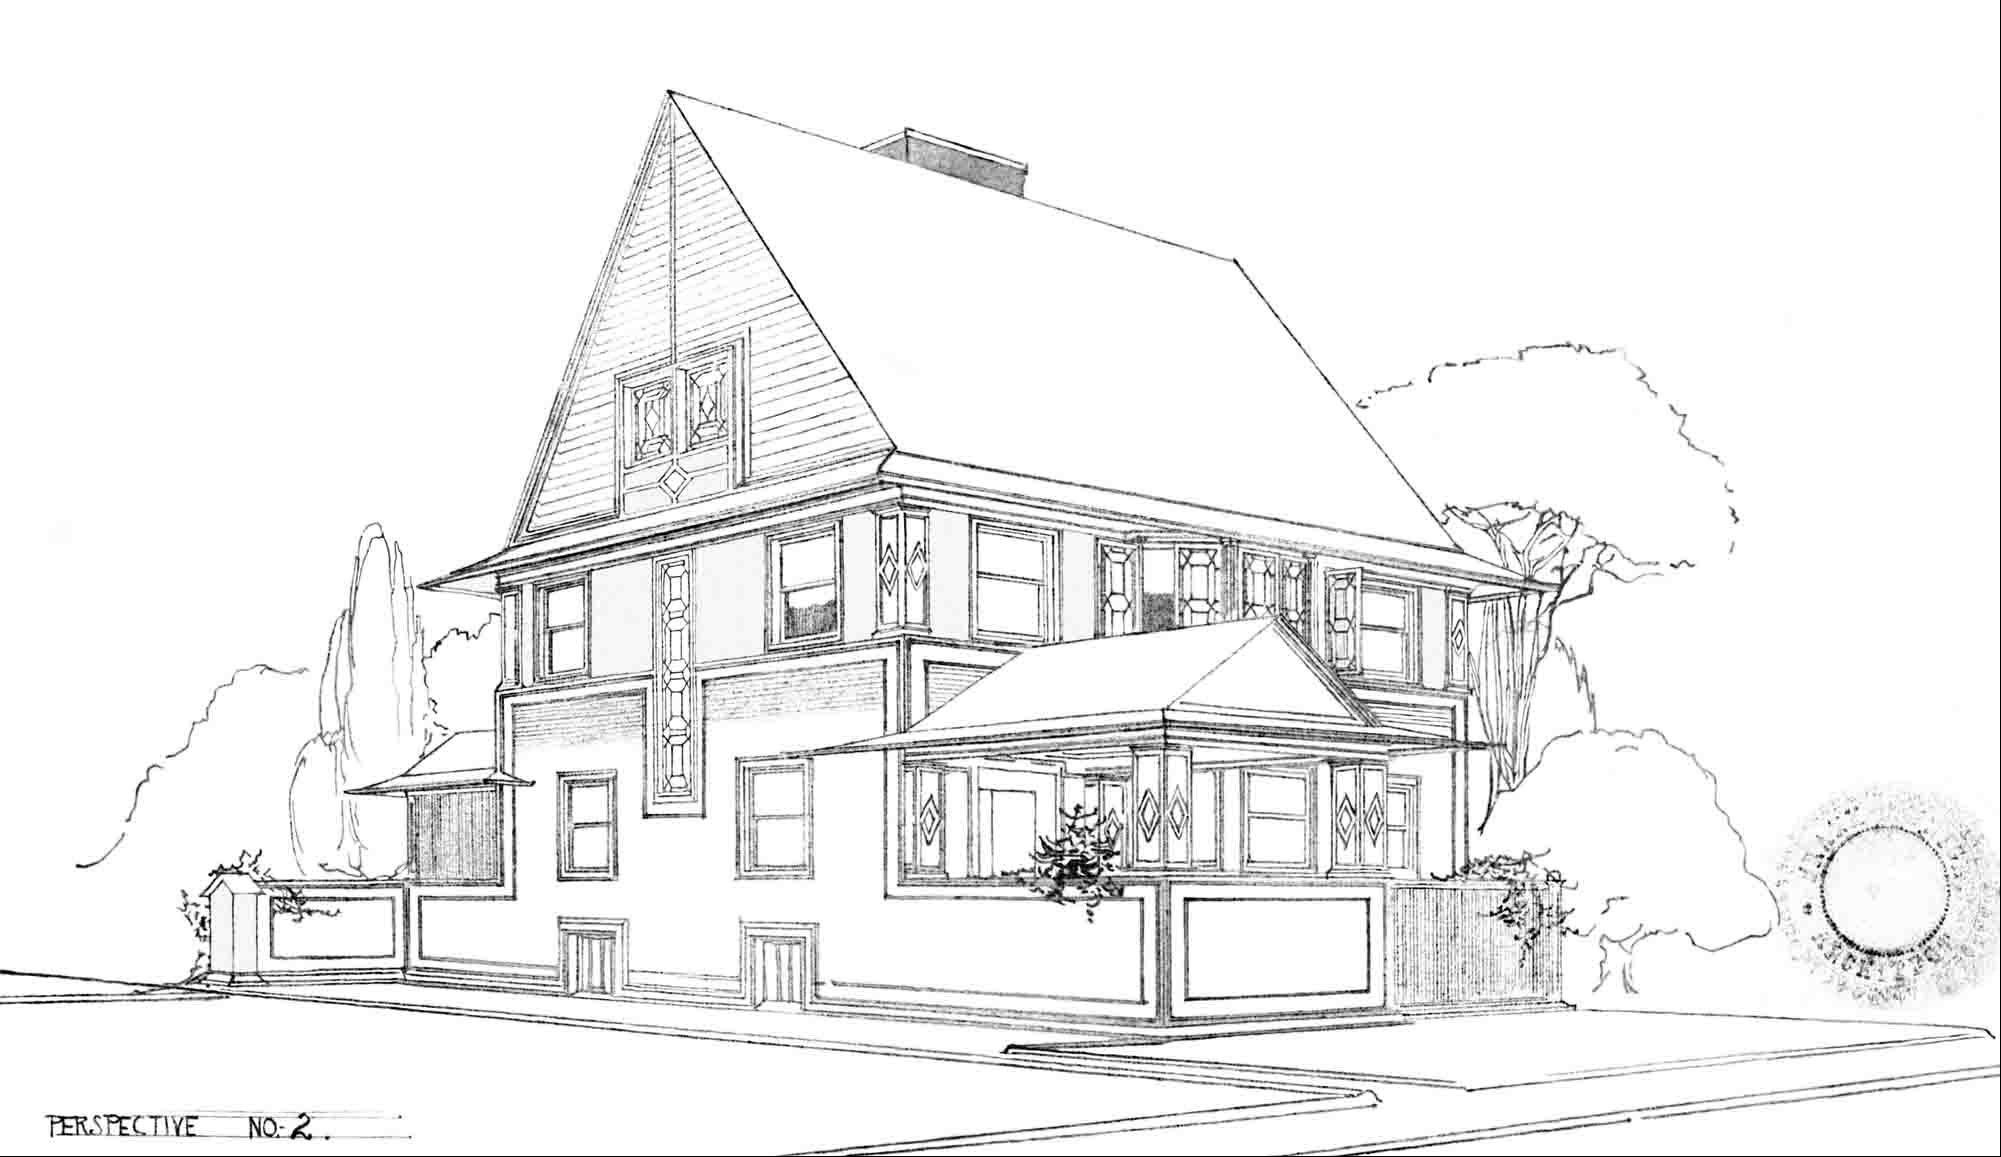 Original drawing of Mark Donovan and Mary Ludgin's home, designed by Frank Lloyd Wright in 1896.